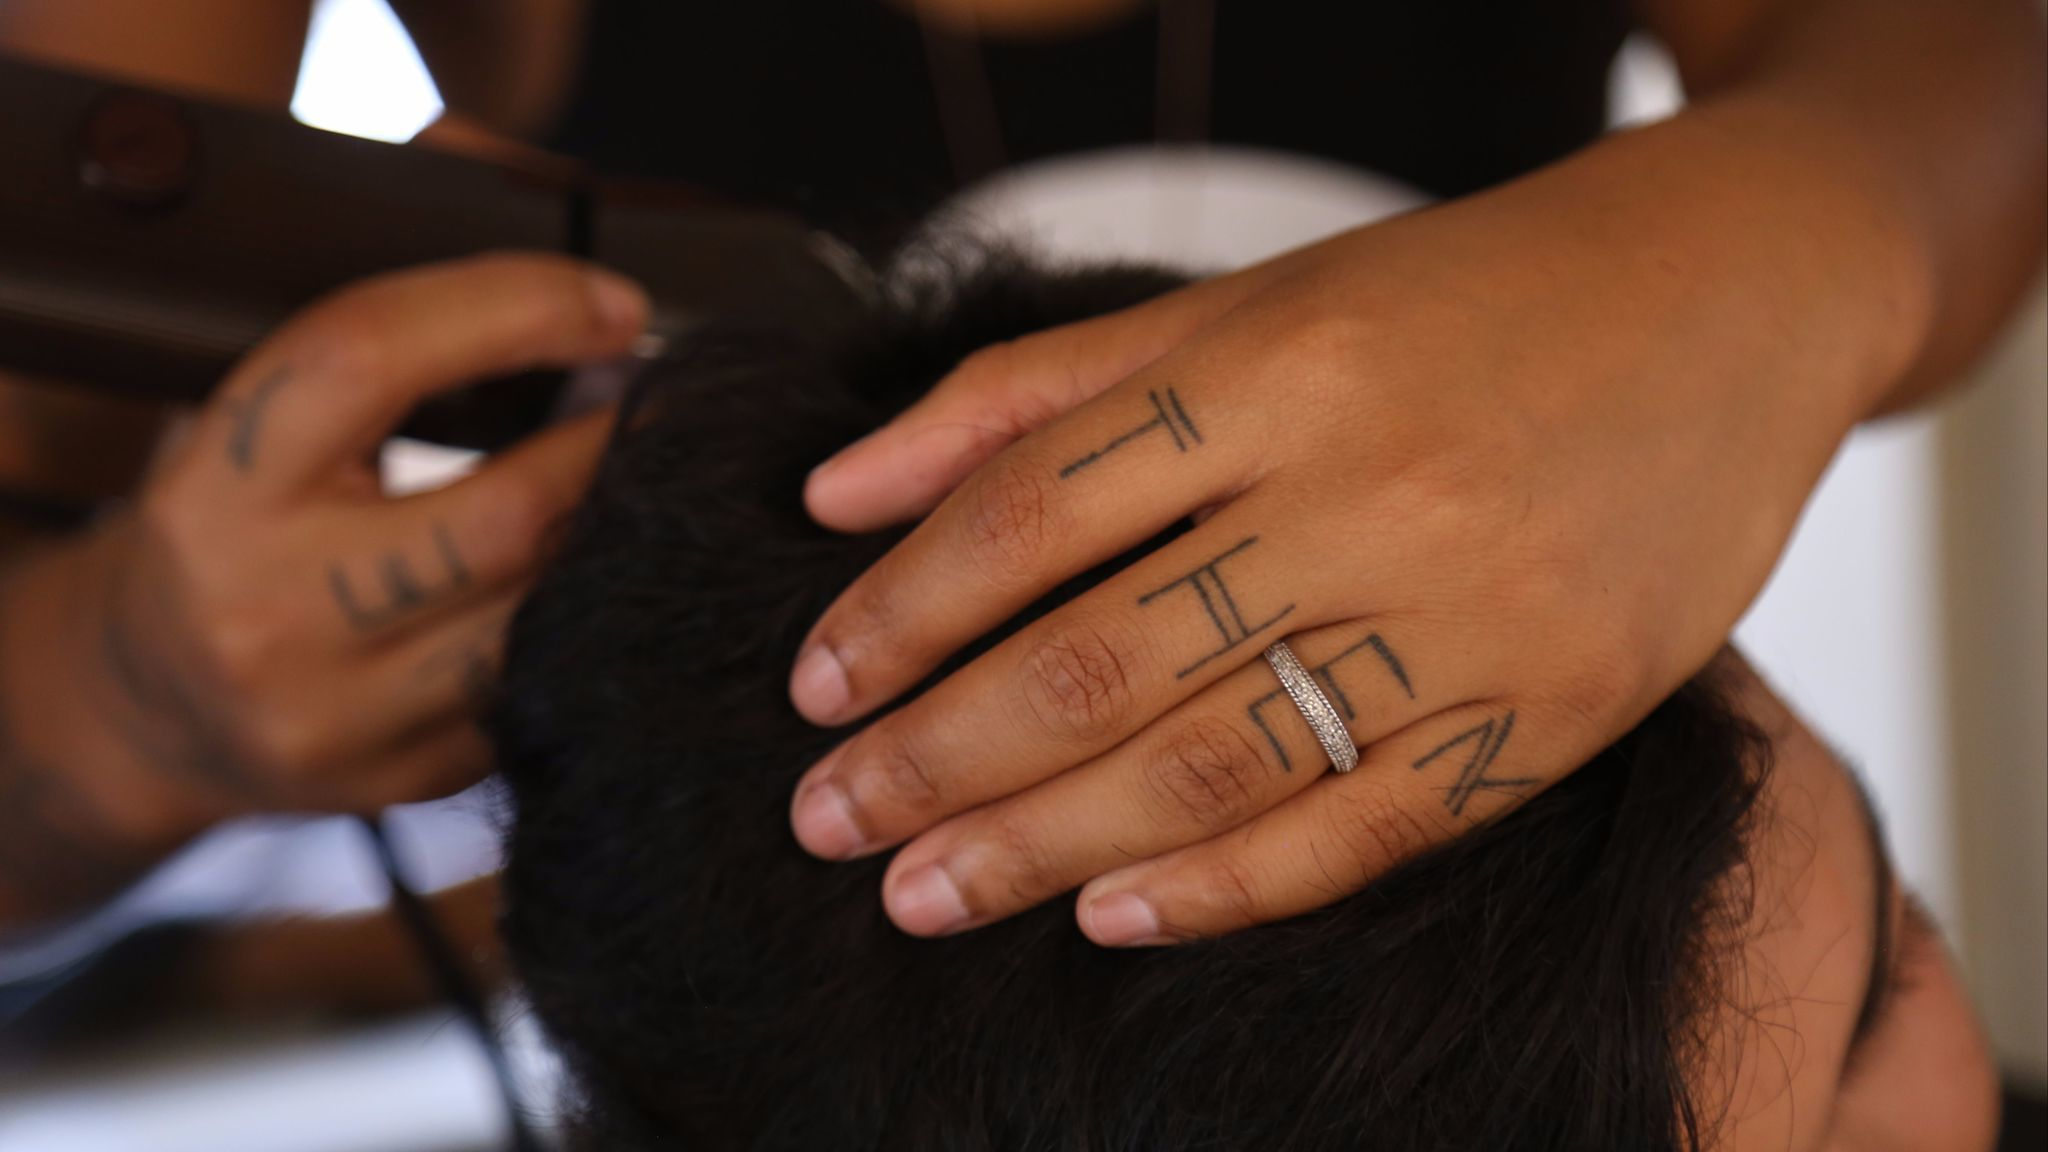 Madin Lopez, whose preferred gender pronouns 'THEY' and 'THEM' are tattooed on their hands, cuts hair in a trailer near the Los Angeles LGBTQ Youth Center in Hollywood.